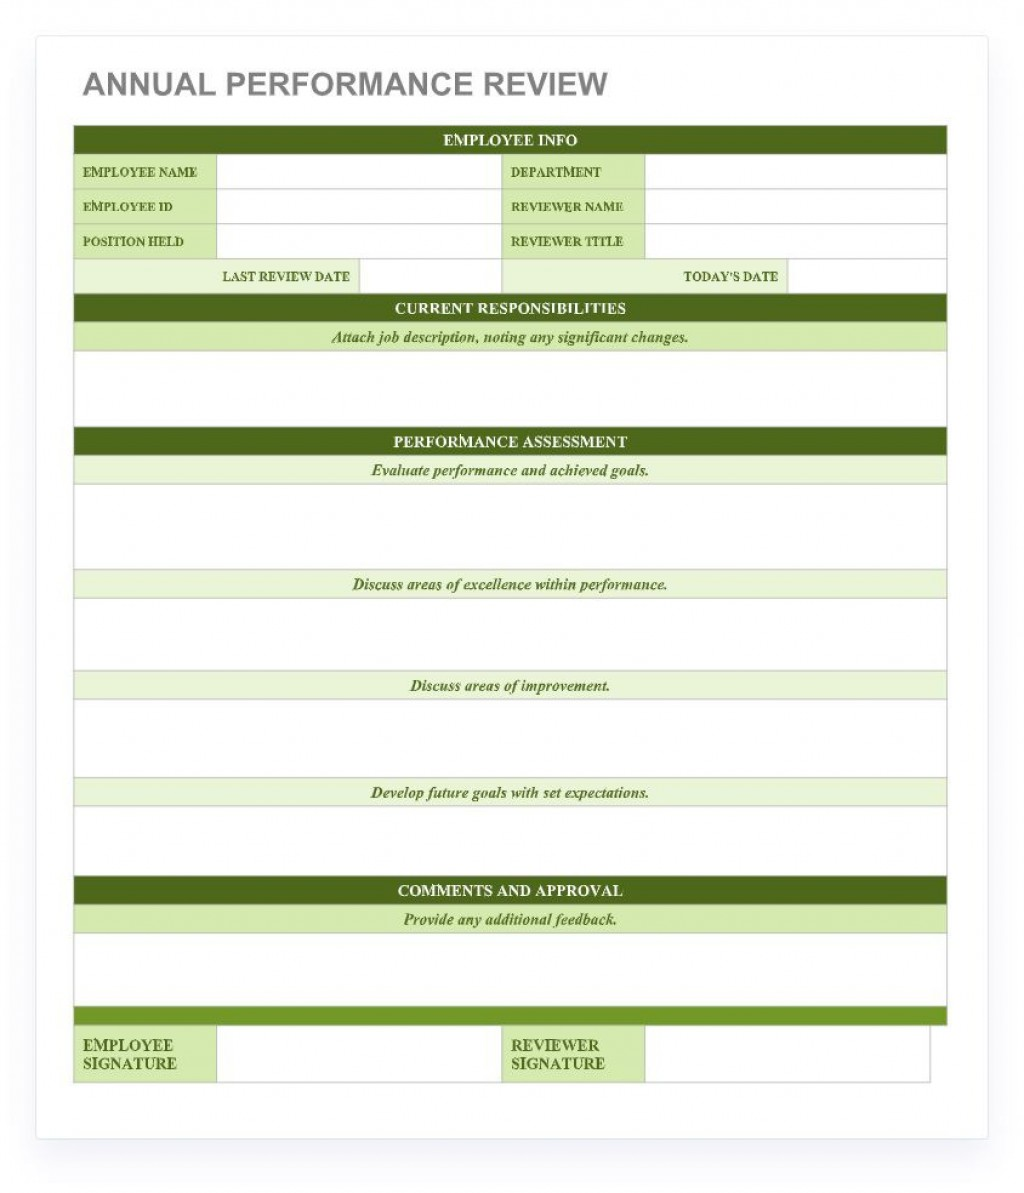 002 Marvelou Employee Performance Evaluation Template Idea  Templates Doc Form Free Download Appraisal WordLarge